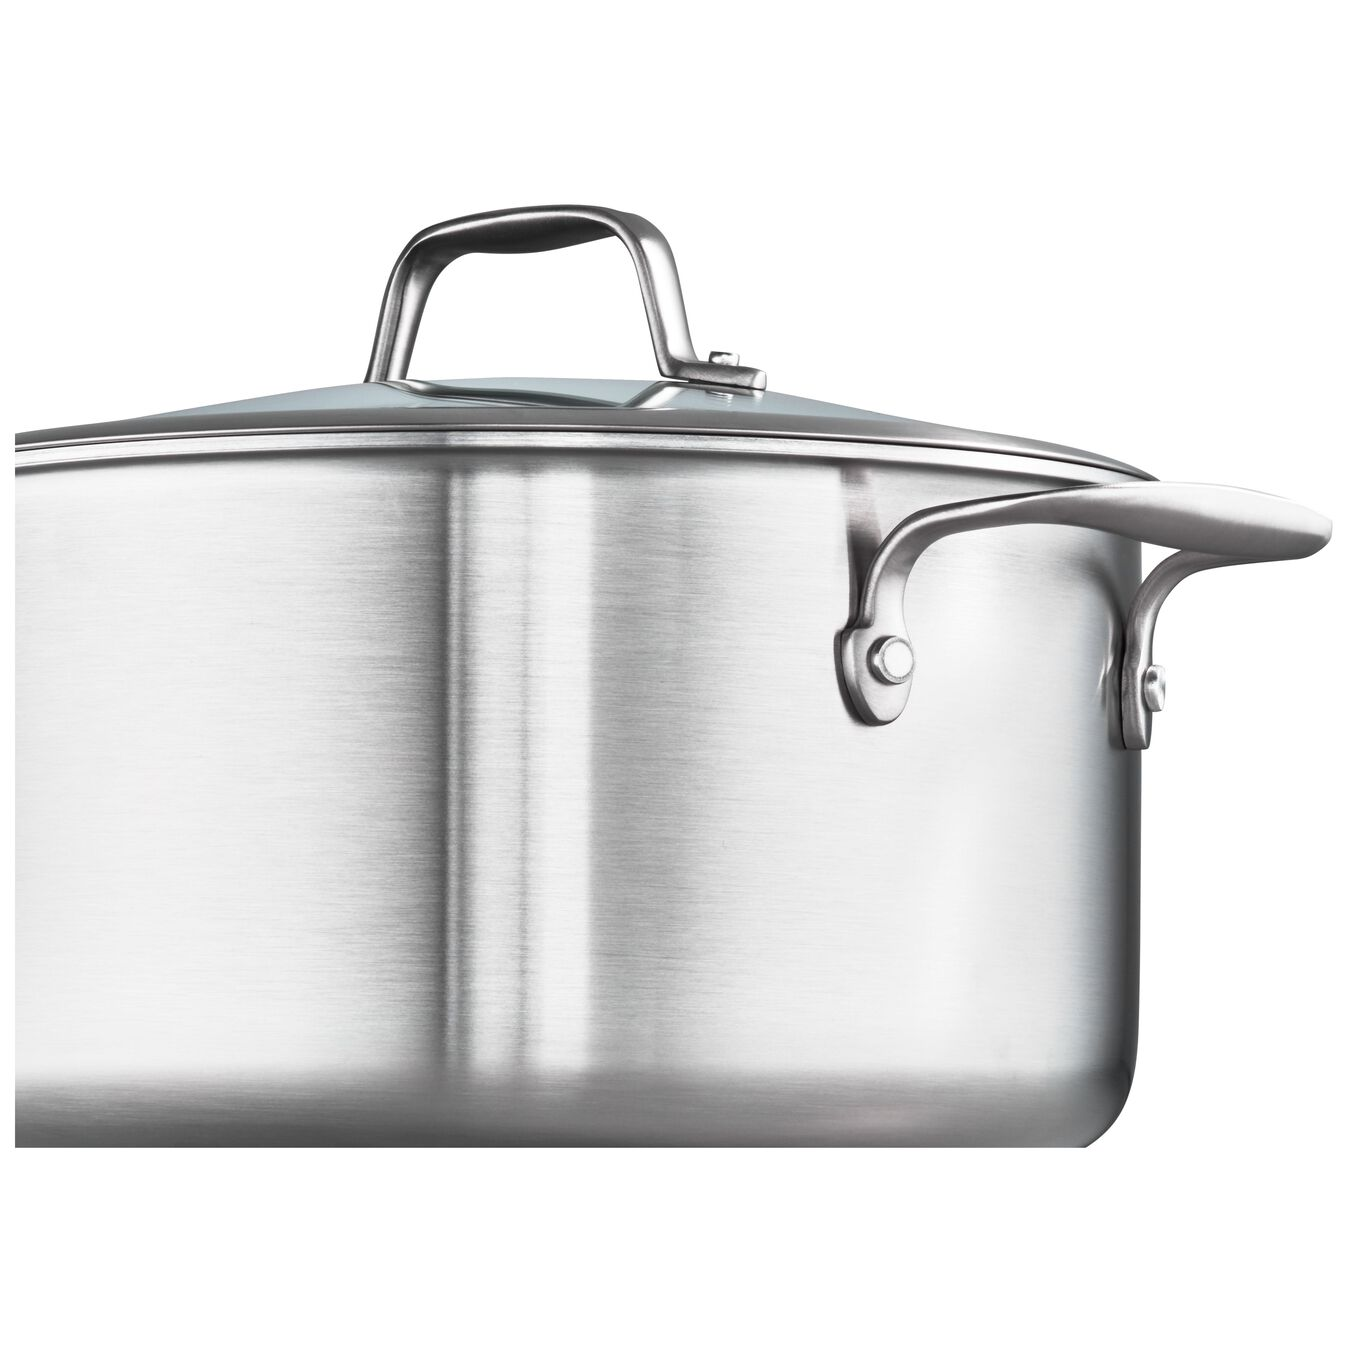 3-ply 6-qt Stainless Steel Ceramic Nonstick Dutch Oven,,large 4